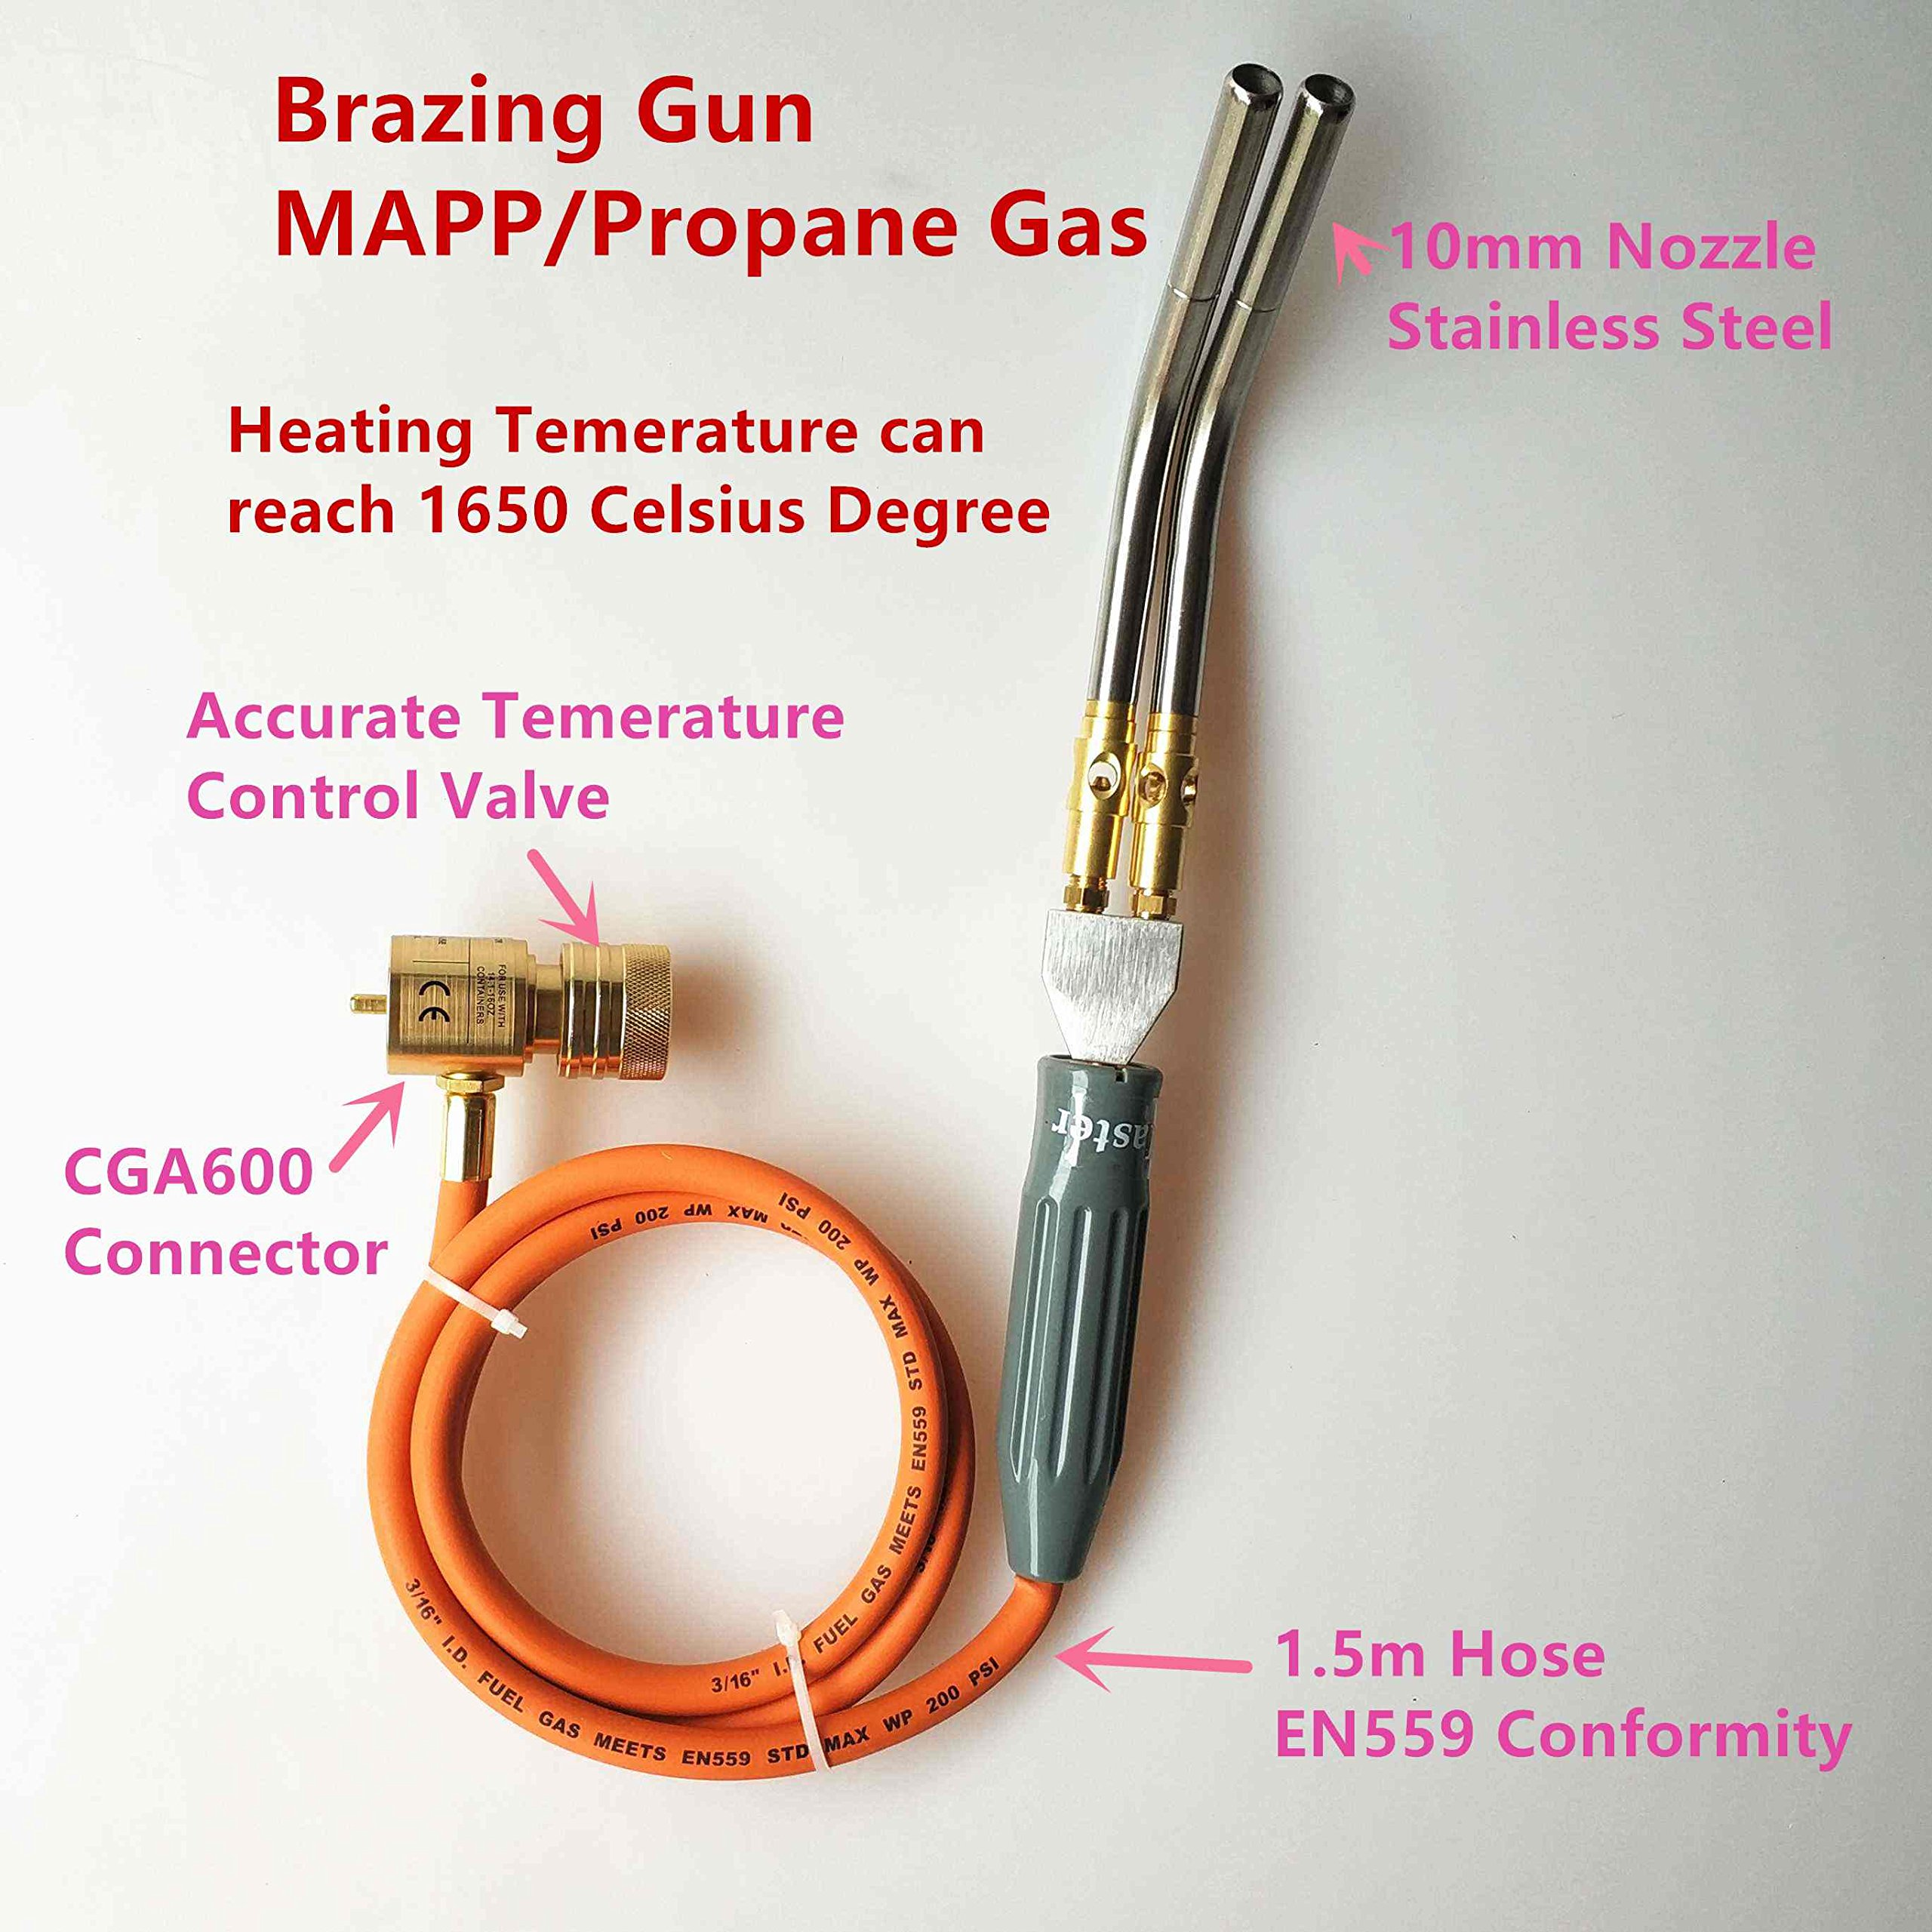 Propane torch-Professional MAPP Catridge Cylinder Gas Brazing Soldering Welding Heating Application 1.5m hose CGA600 connection